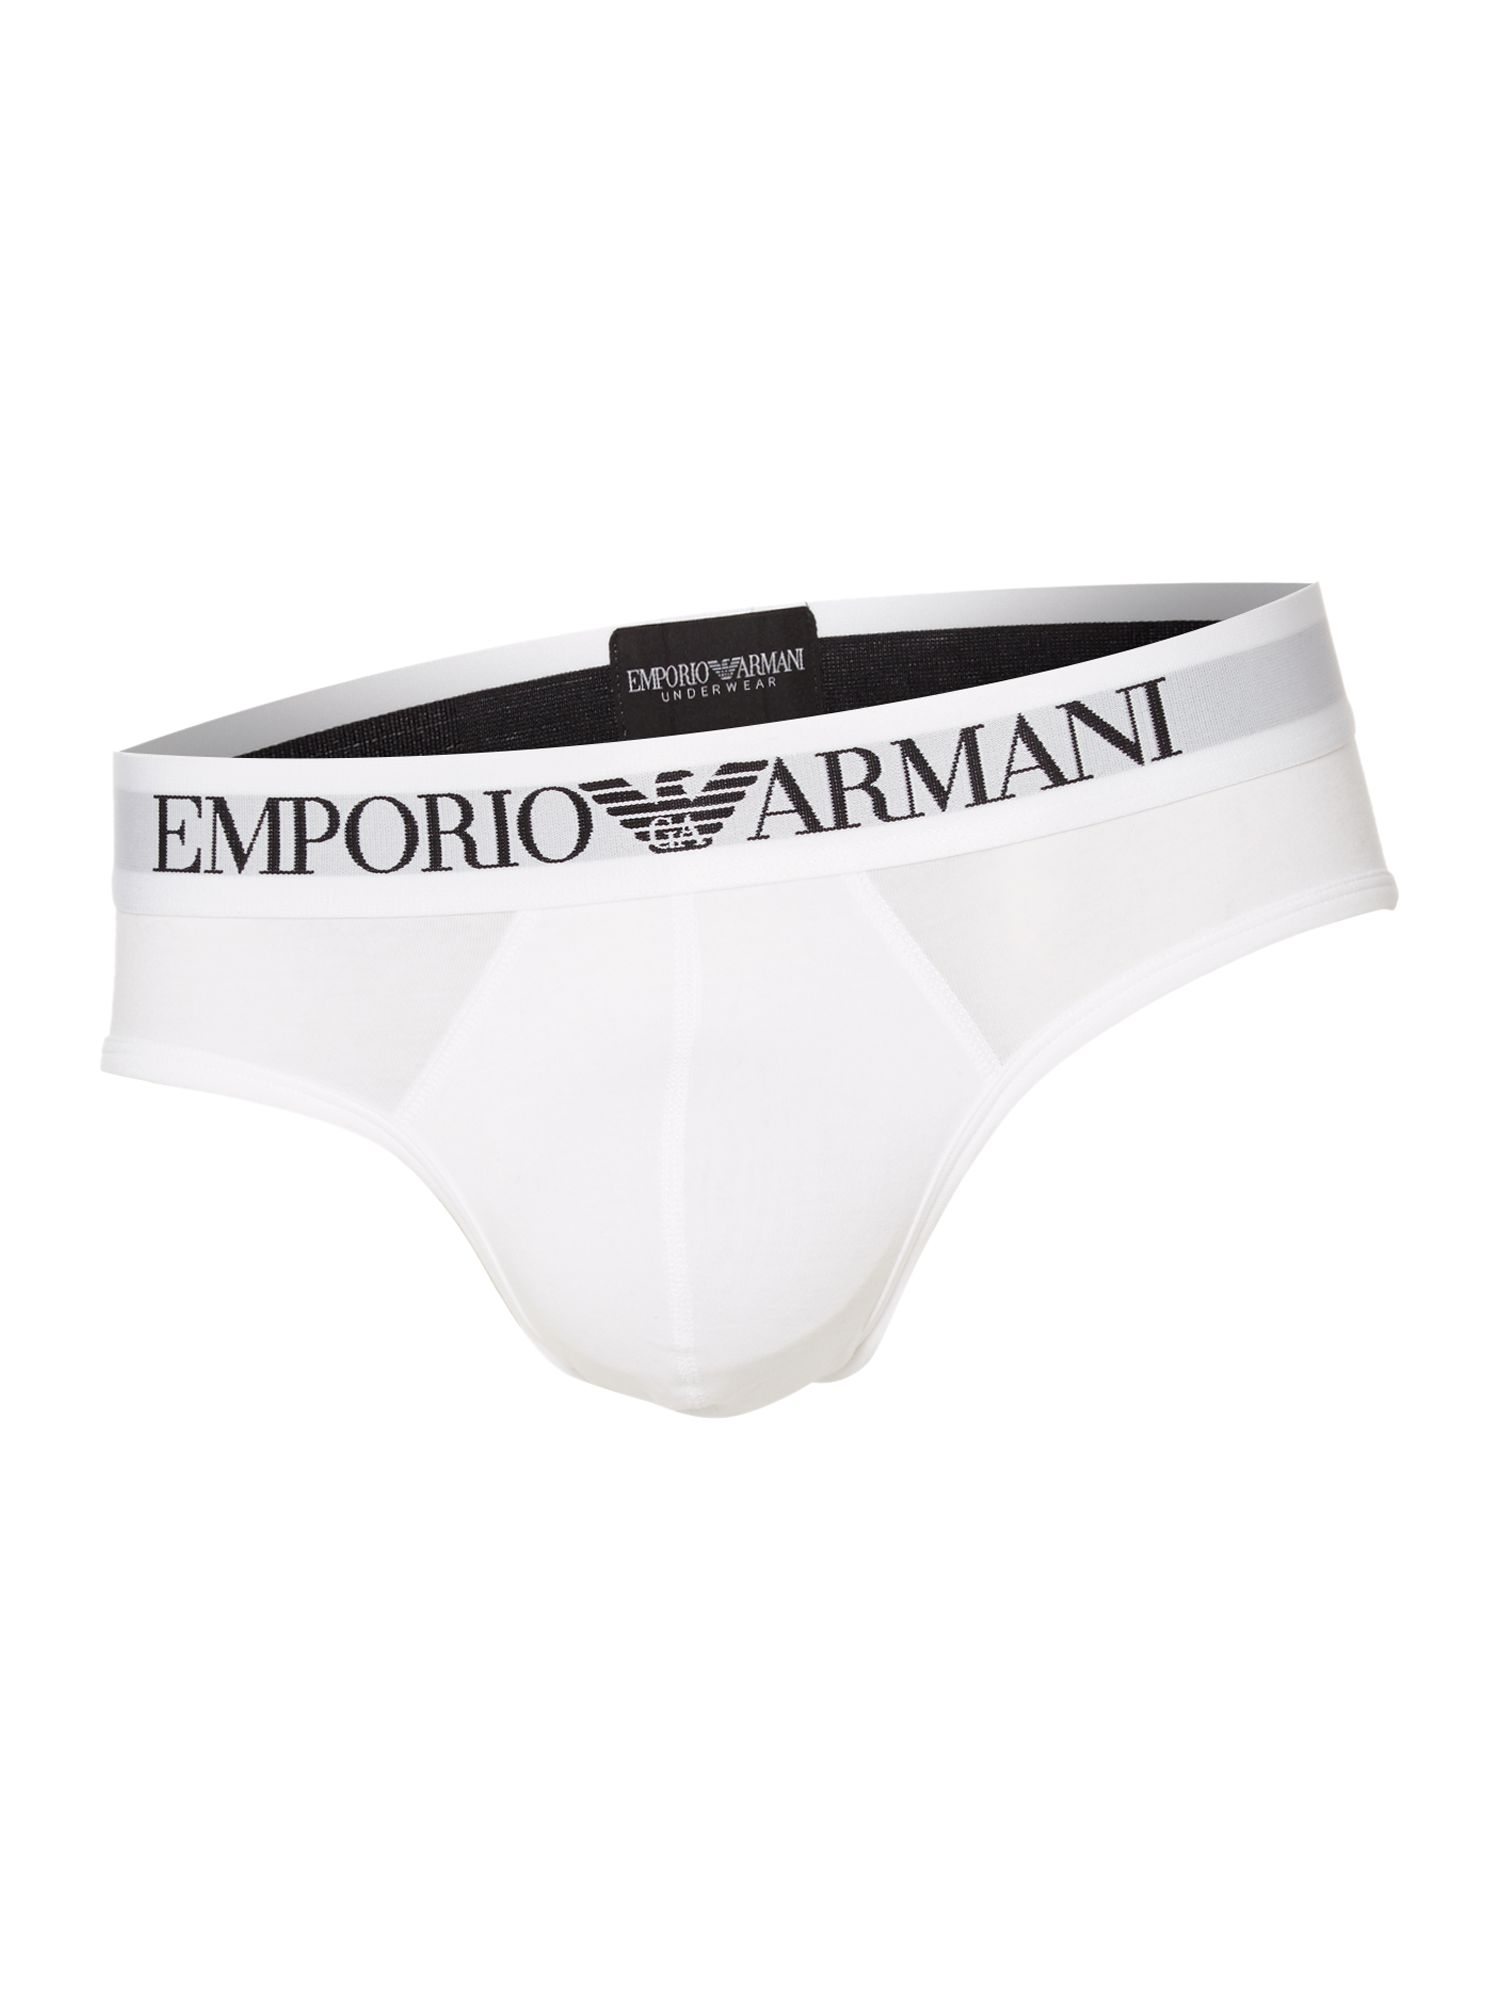 Mens Emporio Armani Large logo briefs White